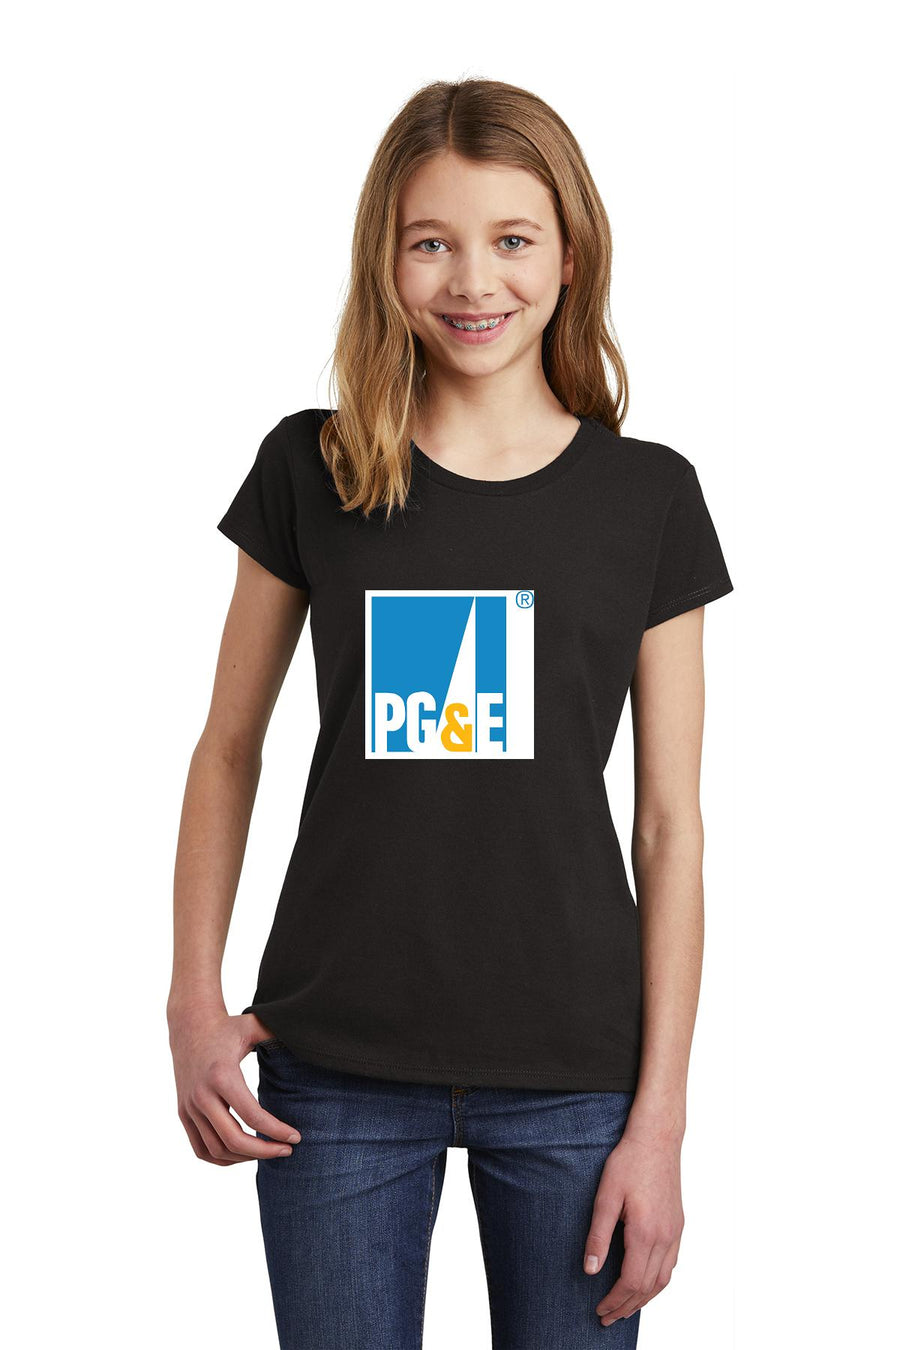 Jeds store-Youth District Girls Tee